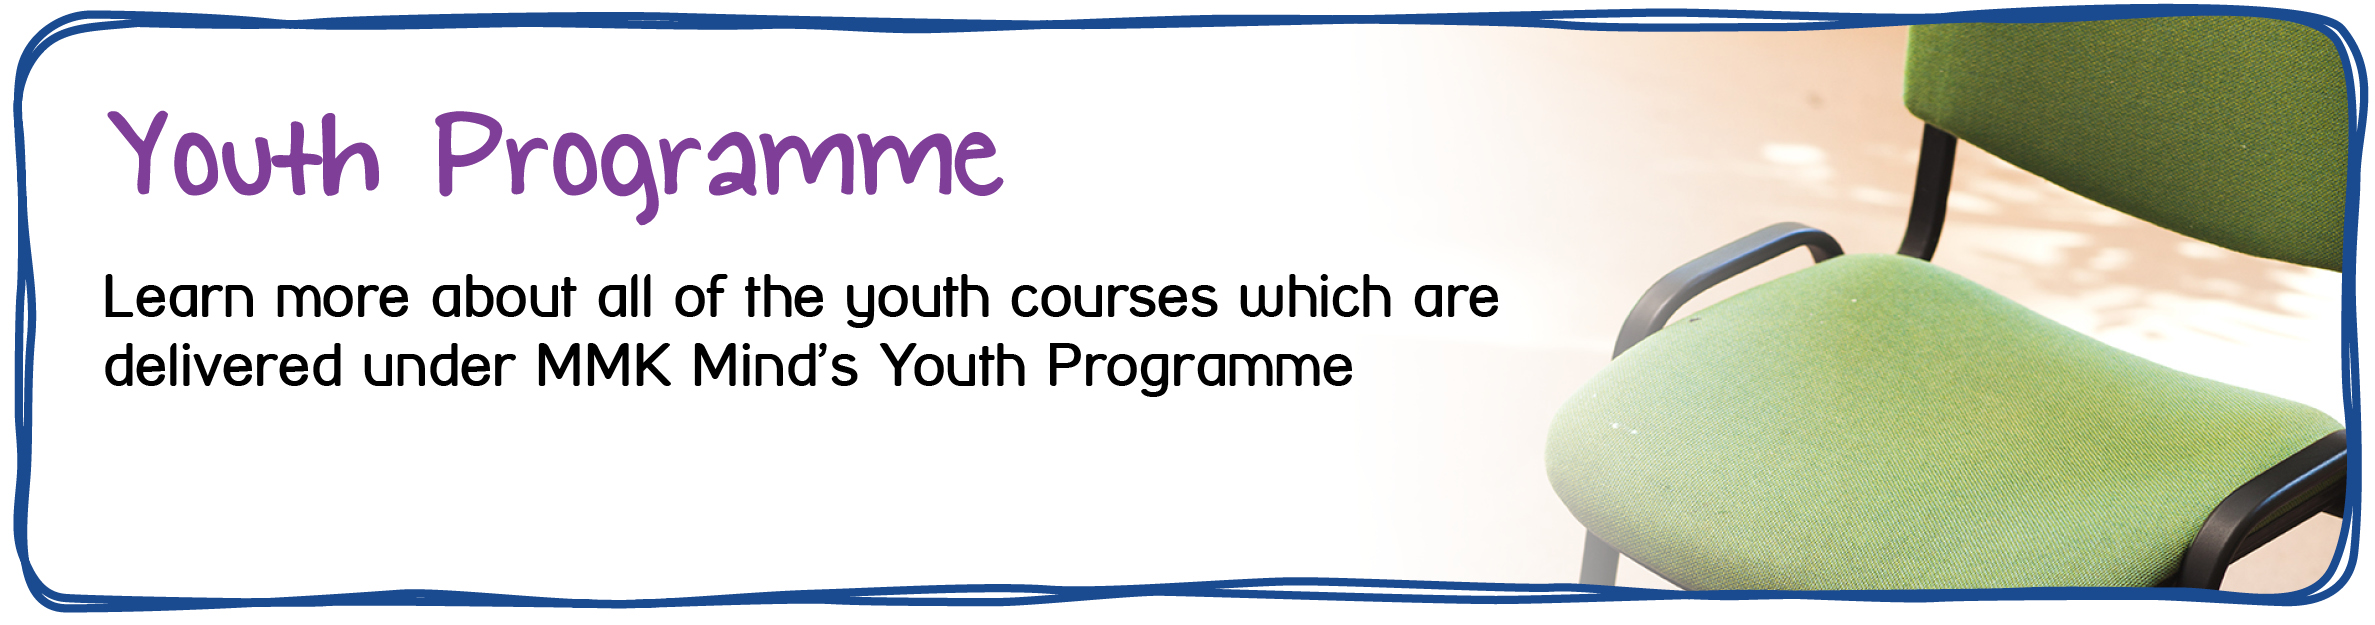 Youth Services - Youth Programme - Learn More About the current Youth Programme.